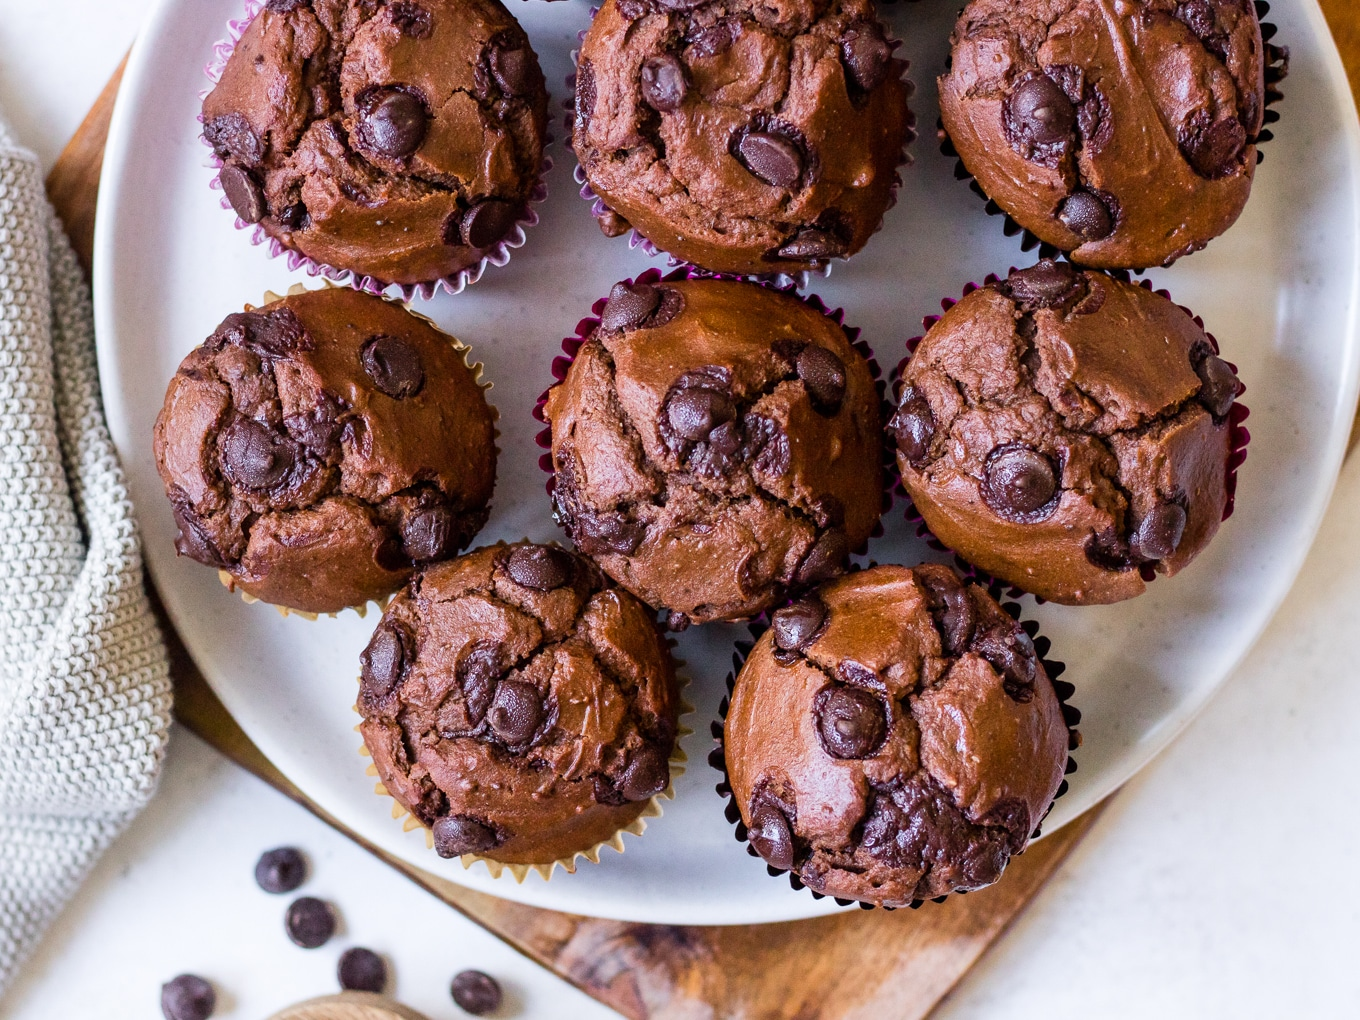 Recipe image for Double Chocolate Sweet Potato Muffins by Nourish Every Day